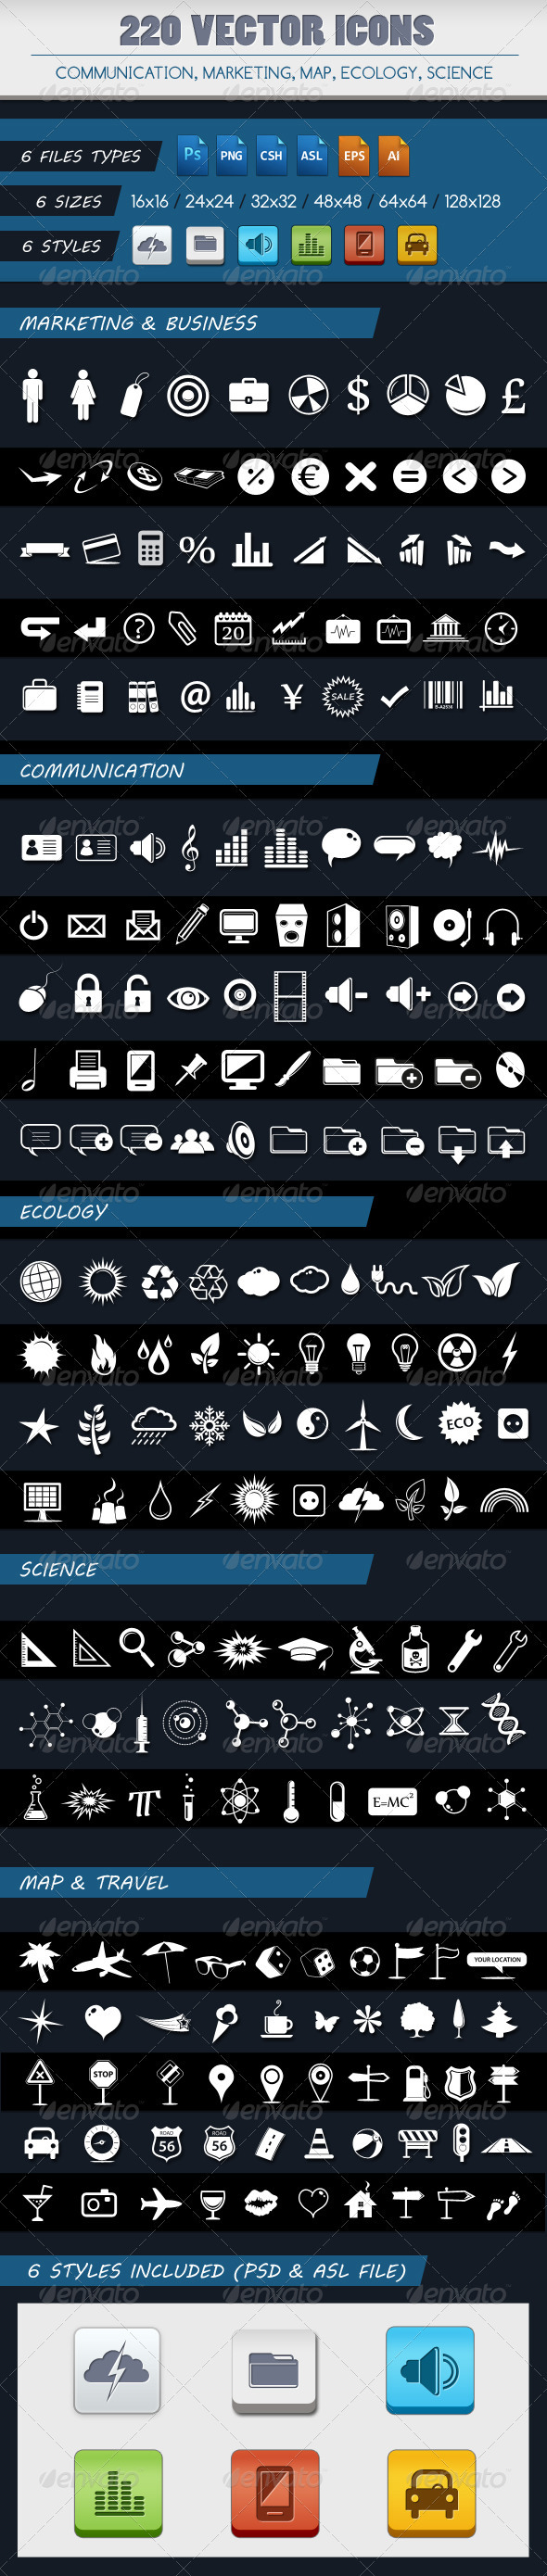 220 VECTOR ICONS OF 5 CATEGORIES - Web Icons